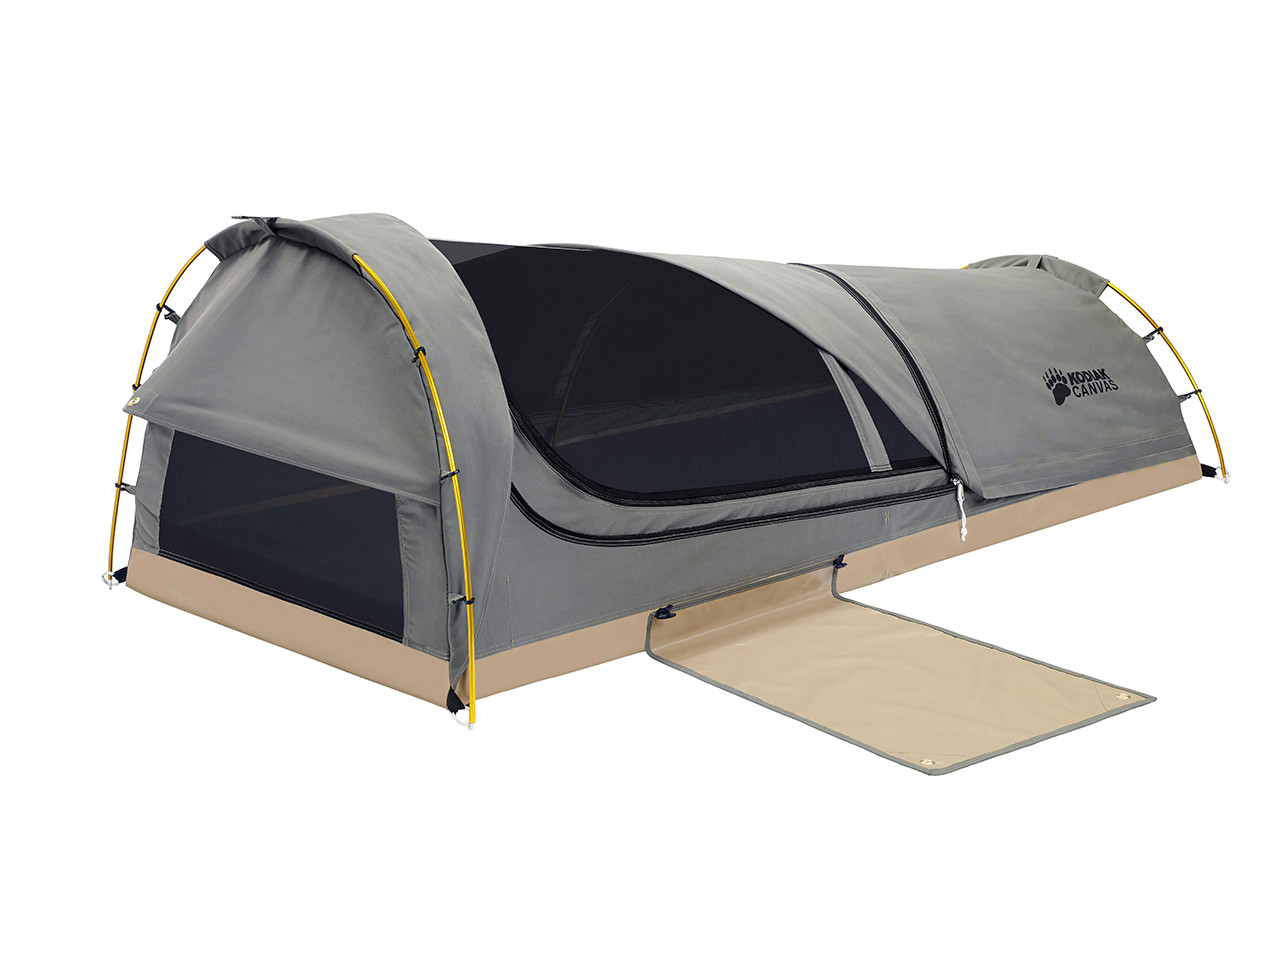 Big W Portable Cot Swag 1 Person Canvas Tent Kodiak Canvas